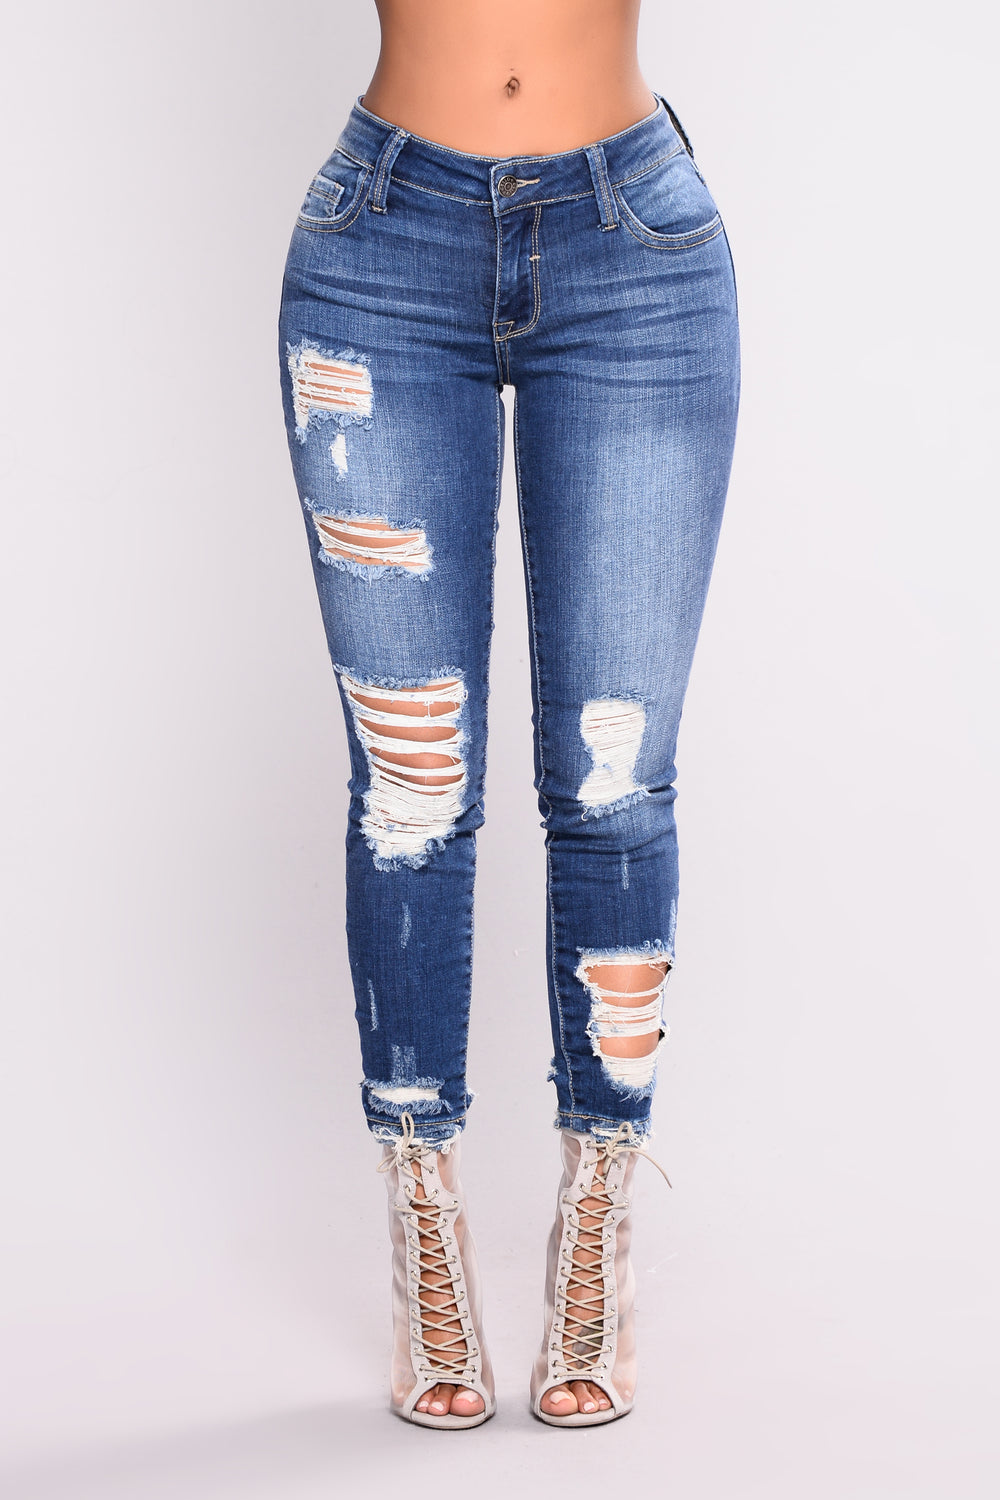 Dewey High Rise Jeans - Medium Wash